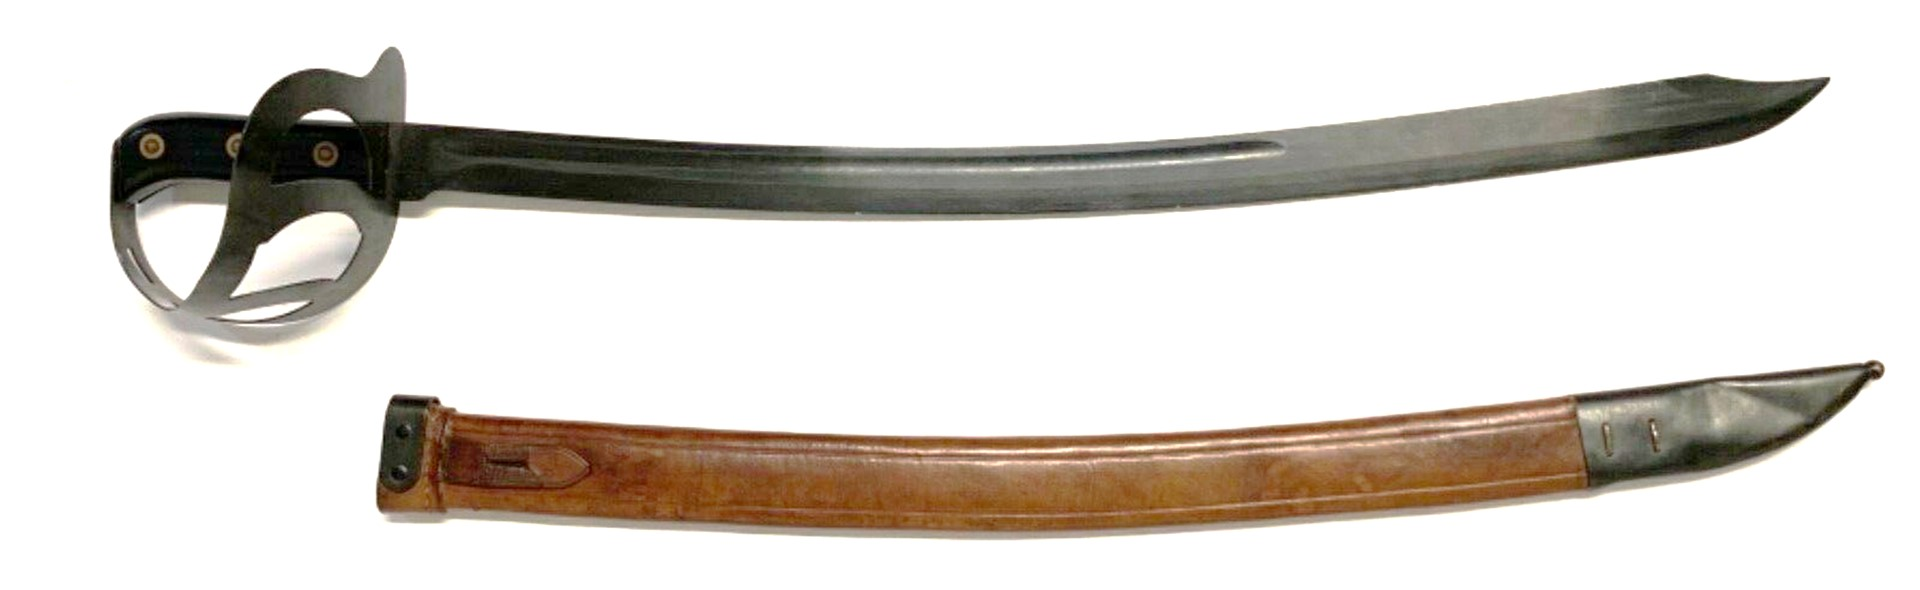 Name:  US Marked Scabbard 8.jpg Views: 217 Size:  92.2 KB